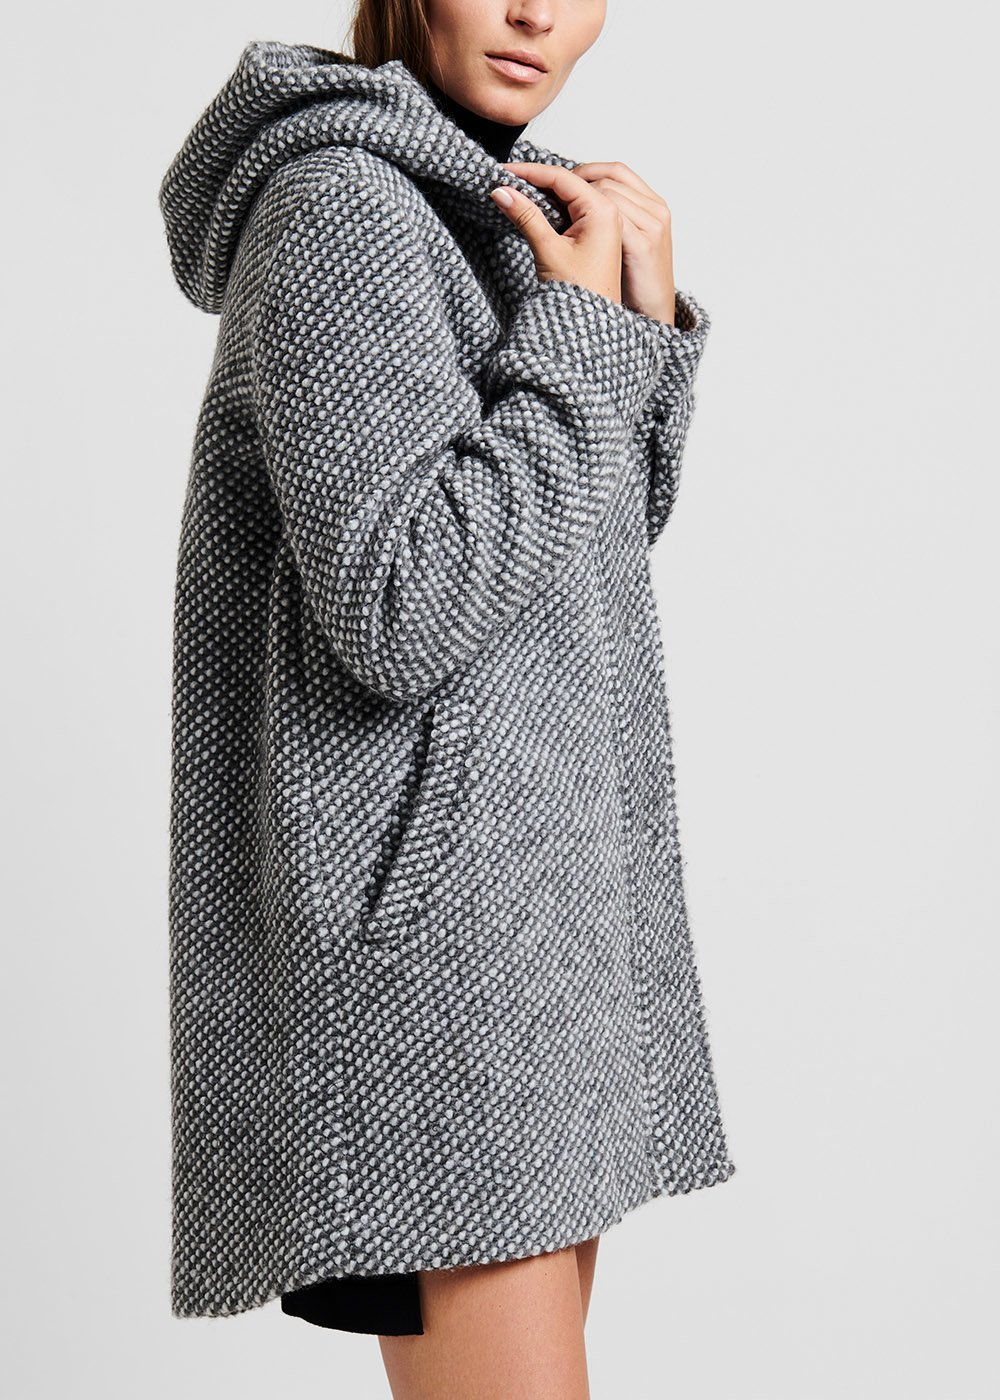 Parka coat in knitted fabric - Grey / White - Woman